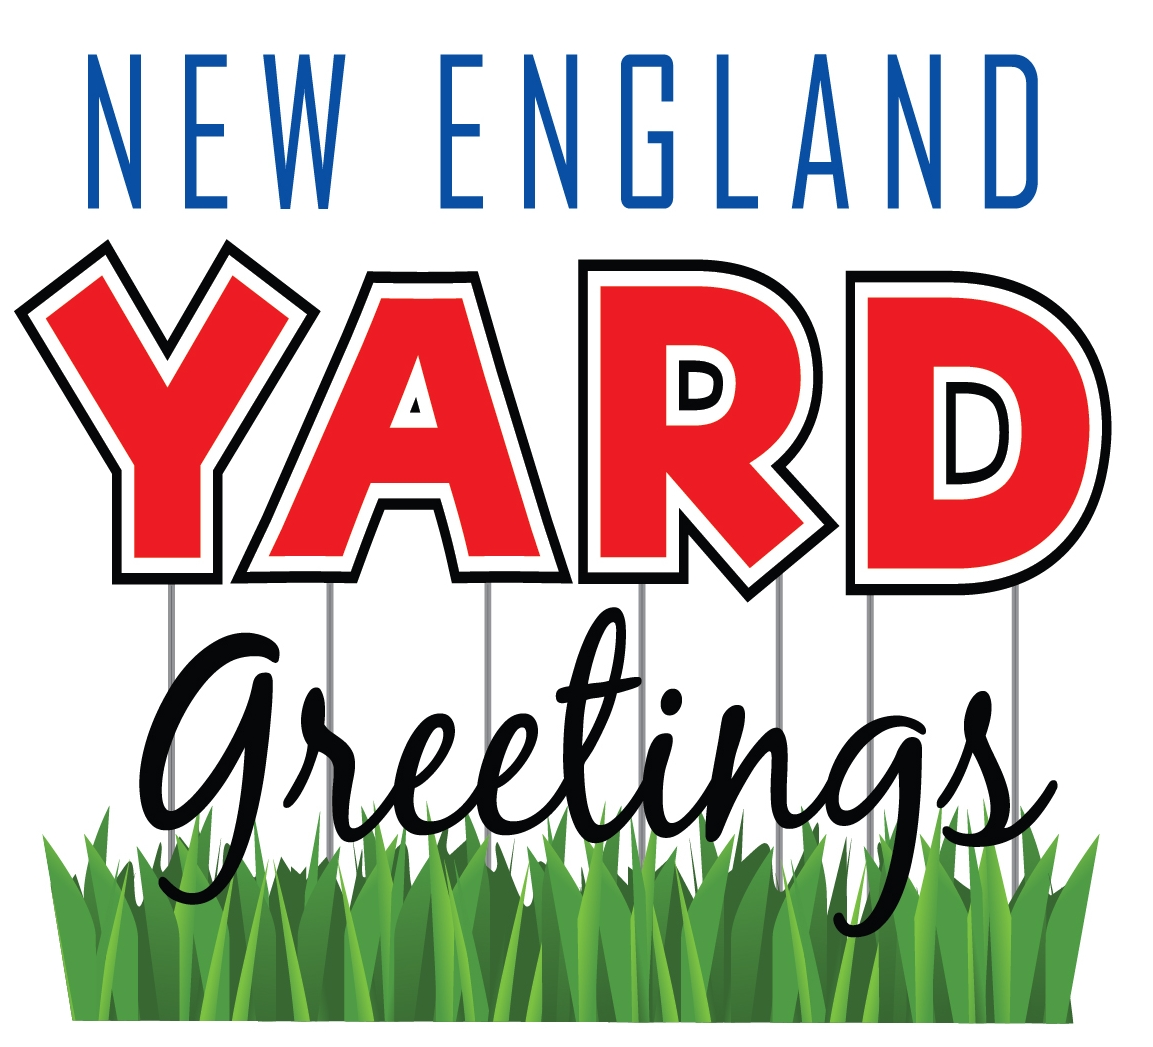 New England Yard Greetings